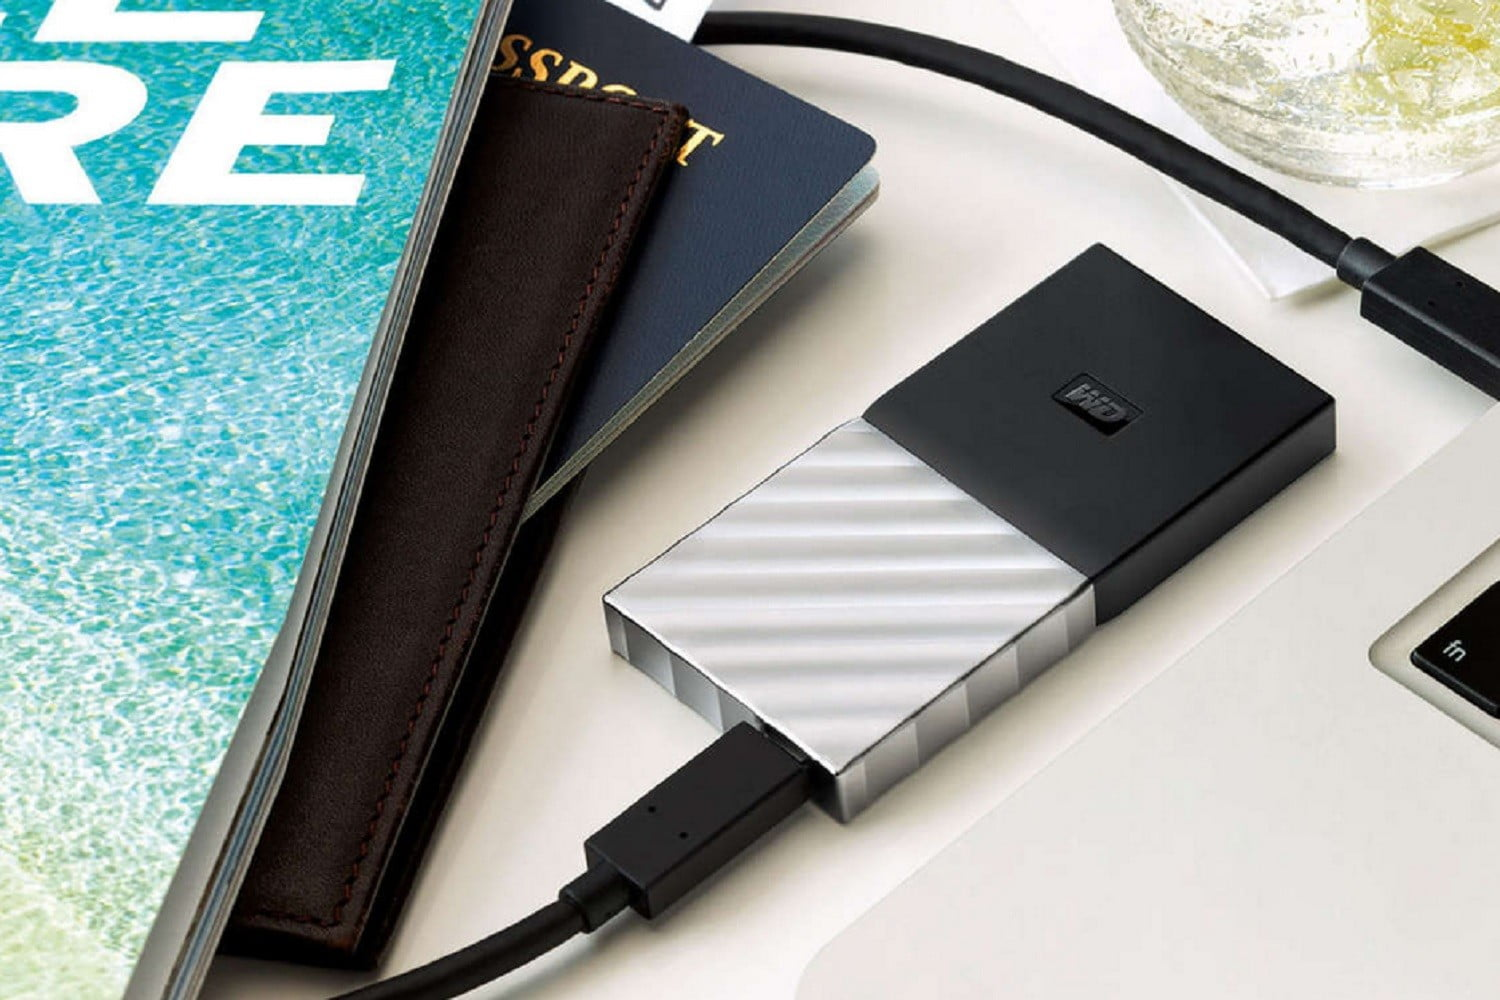 Get This New Generation WD My Passport SSD For Only $170 on